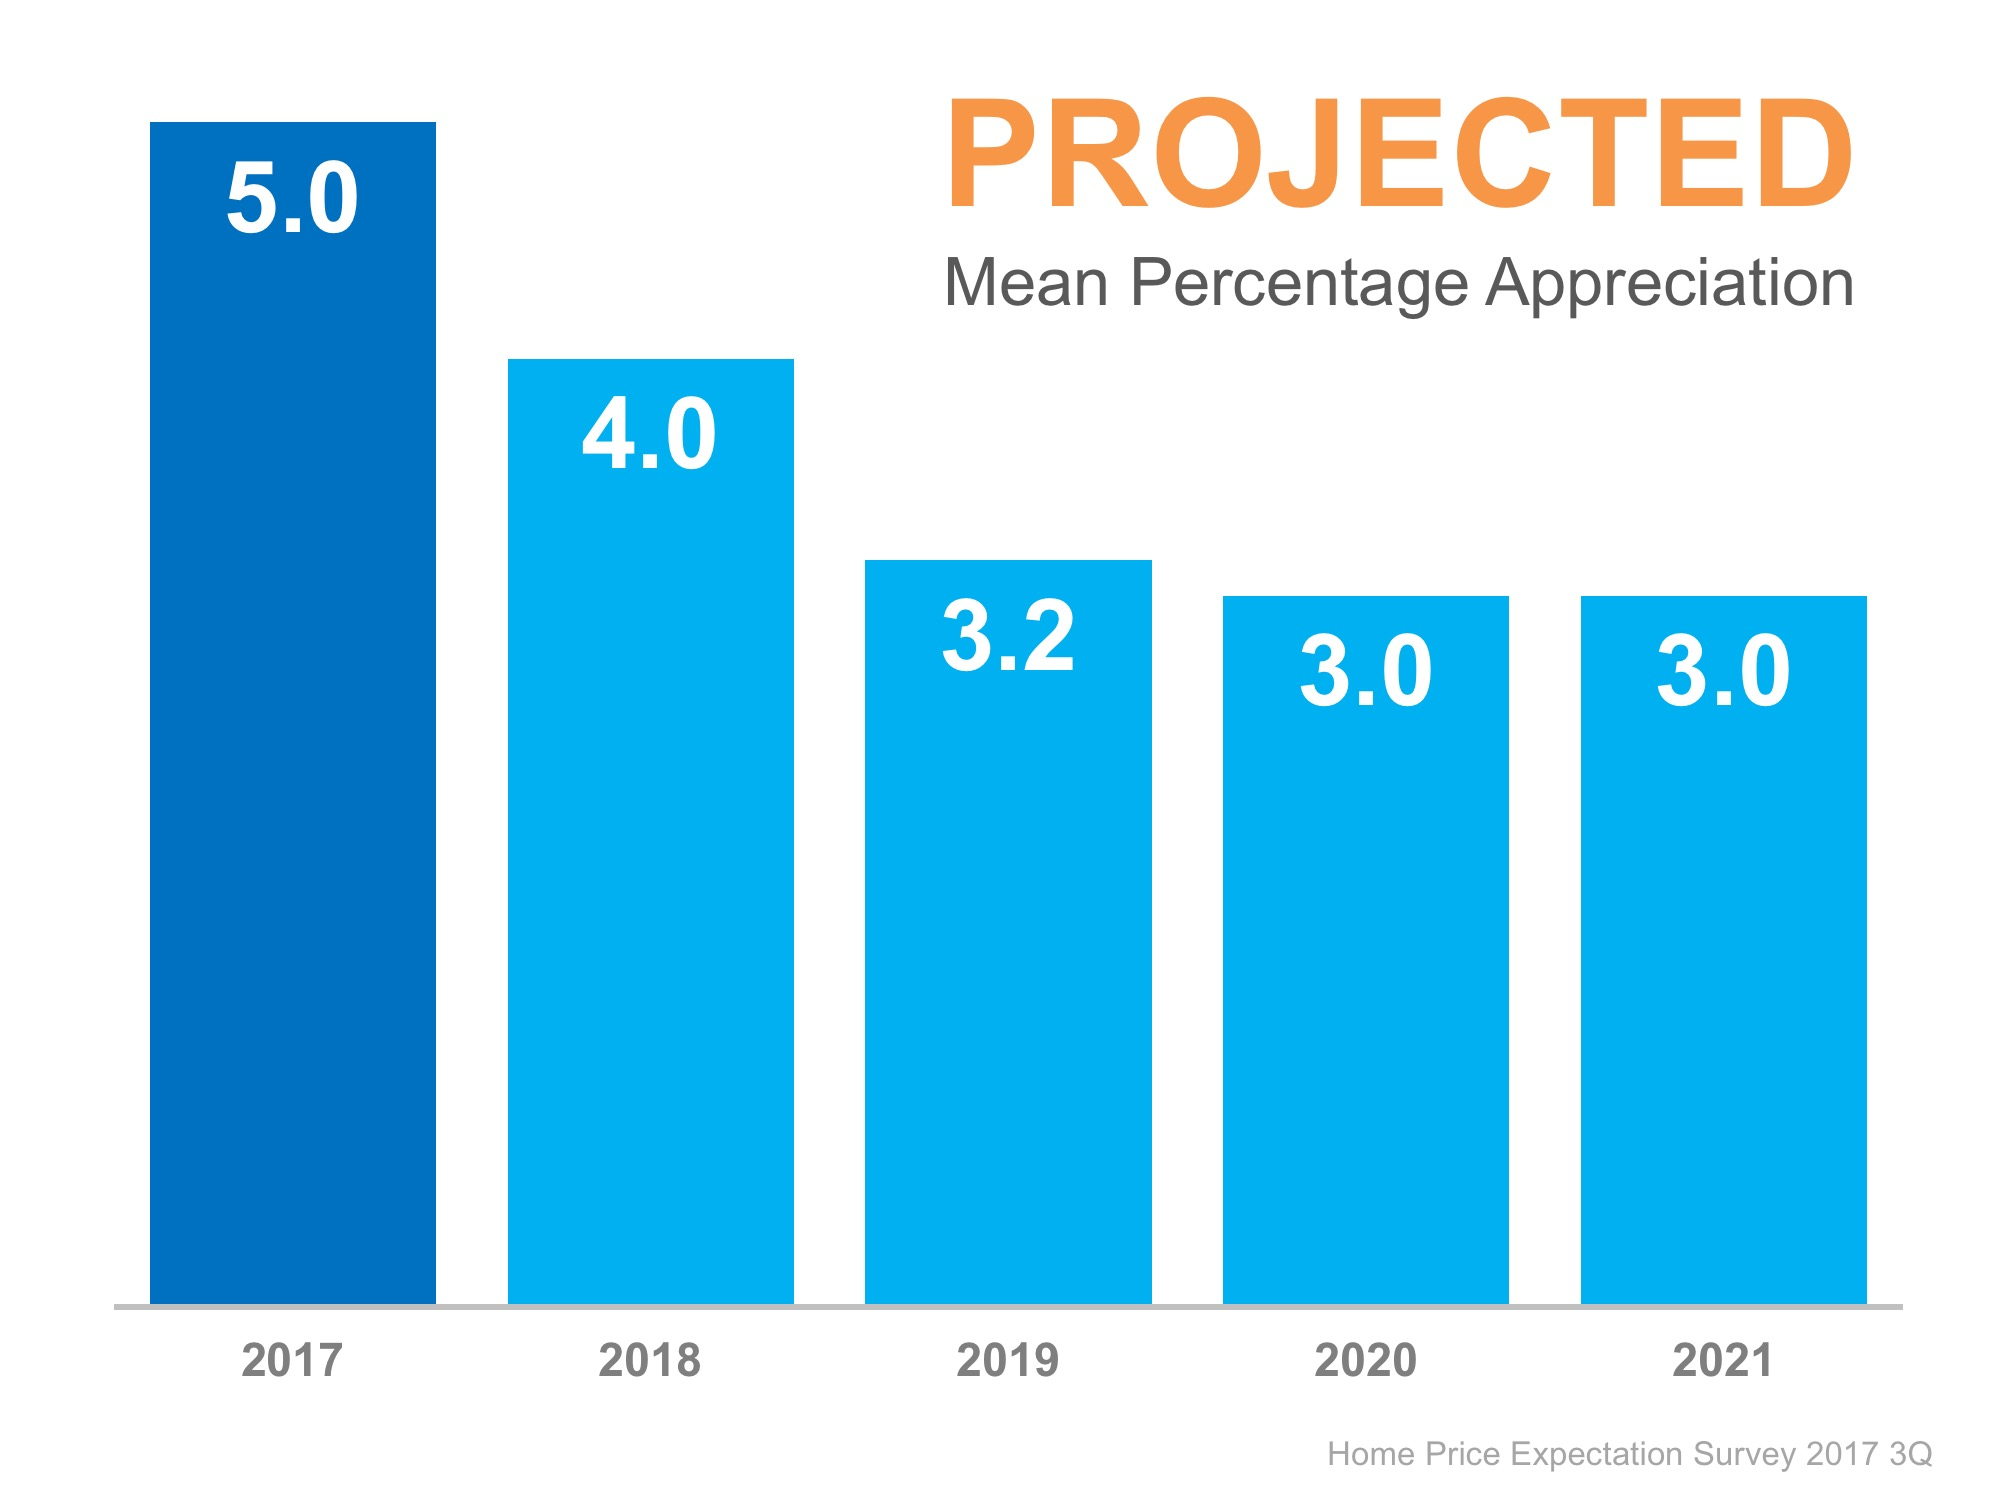 Where Are the Home Prices Heading in The Next 5 Years? | Bridge Builders